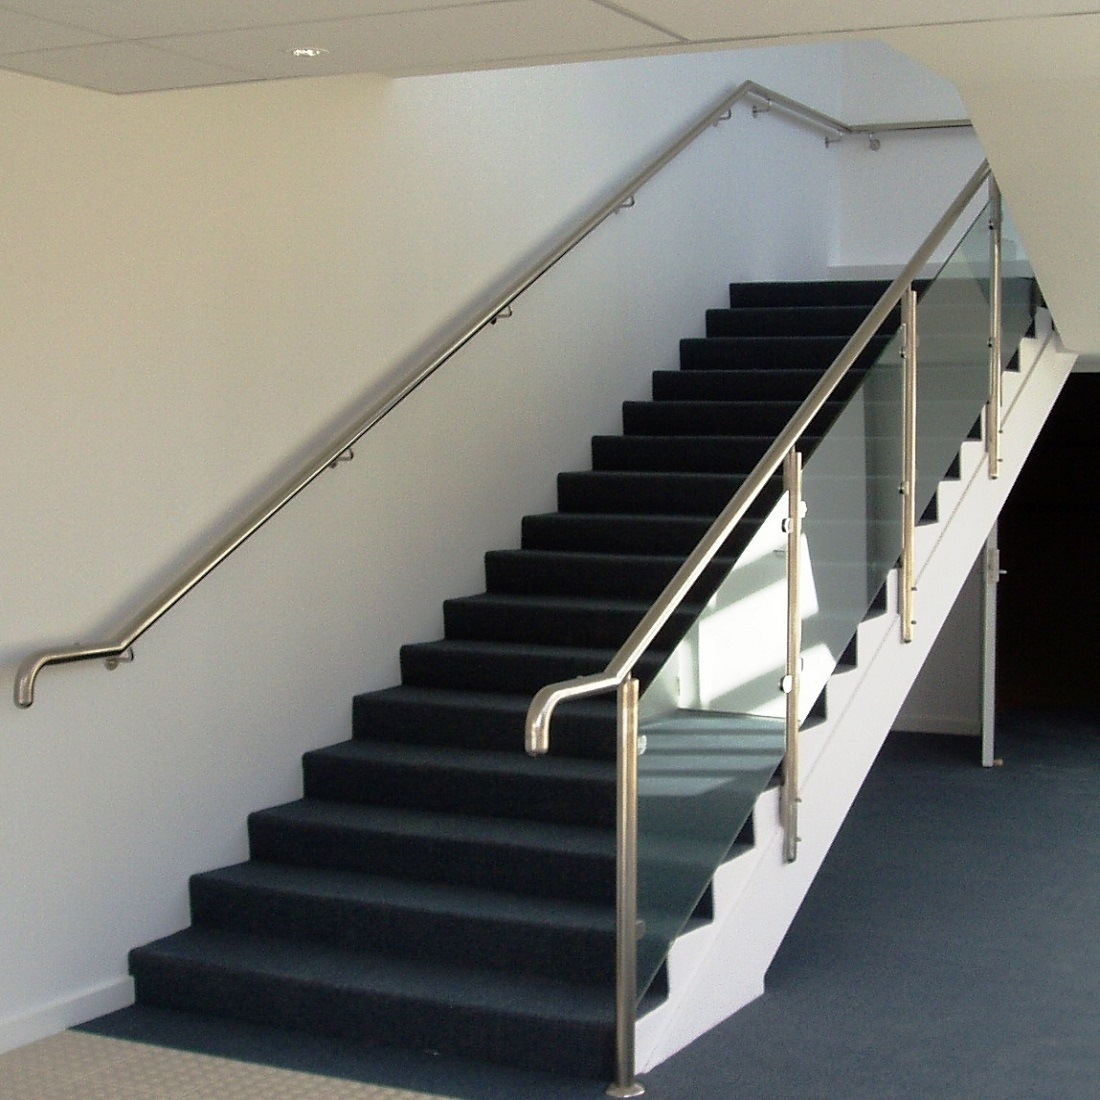 China Modern Handrail Design Indoor Stainless Steel Railing Glass   Steel Handrails For Stairs   Glass   Hand   Stainless Steel   Metal   Wall Mounted